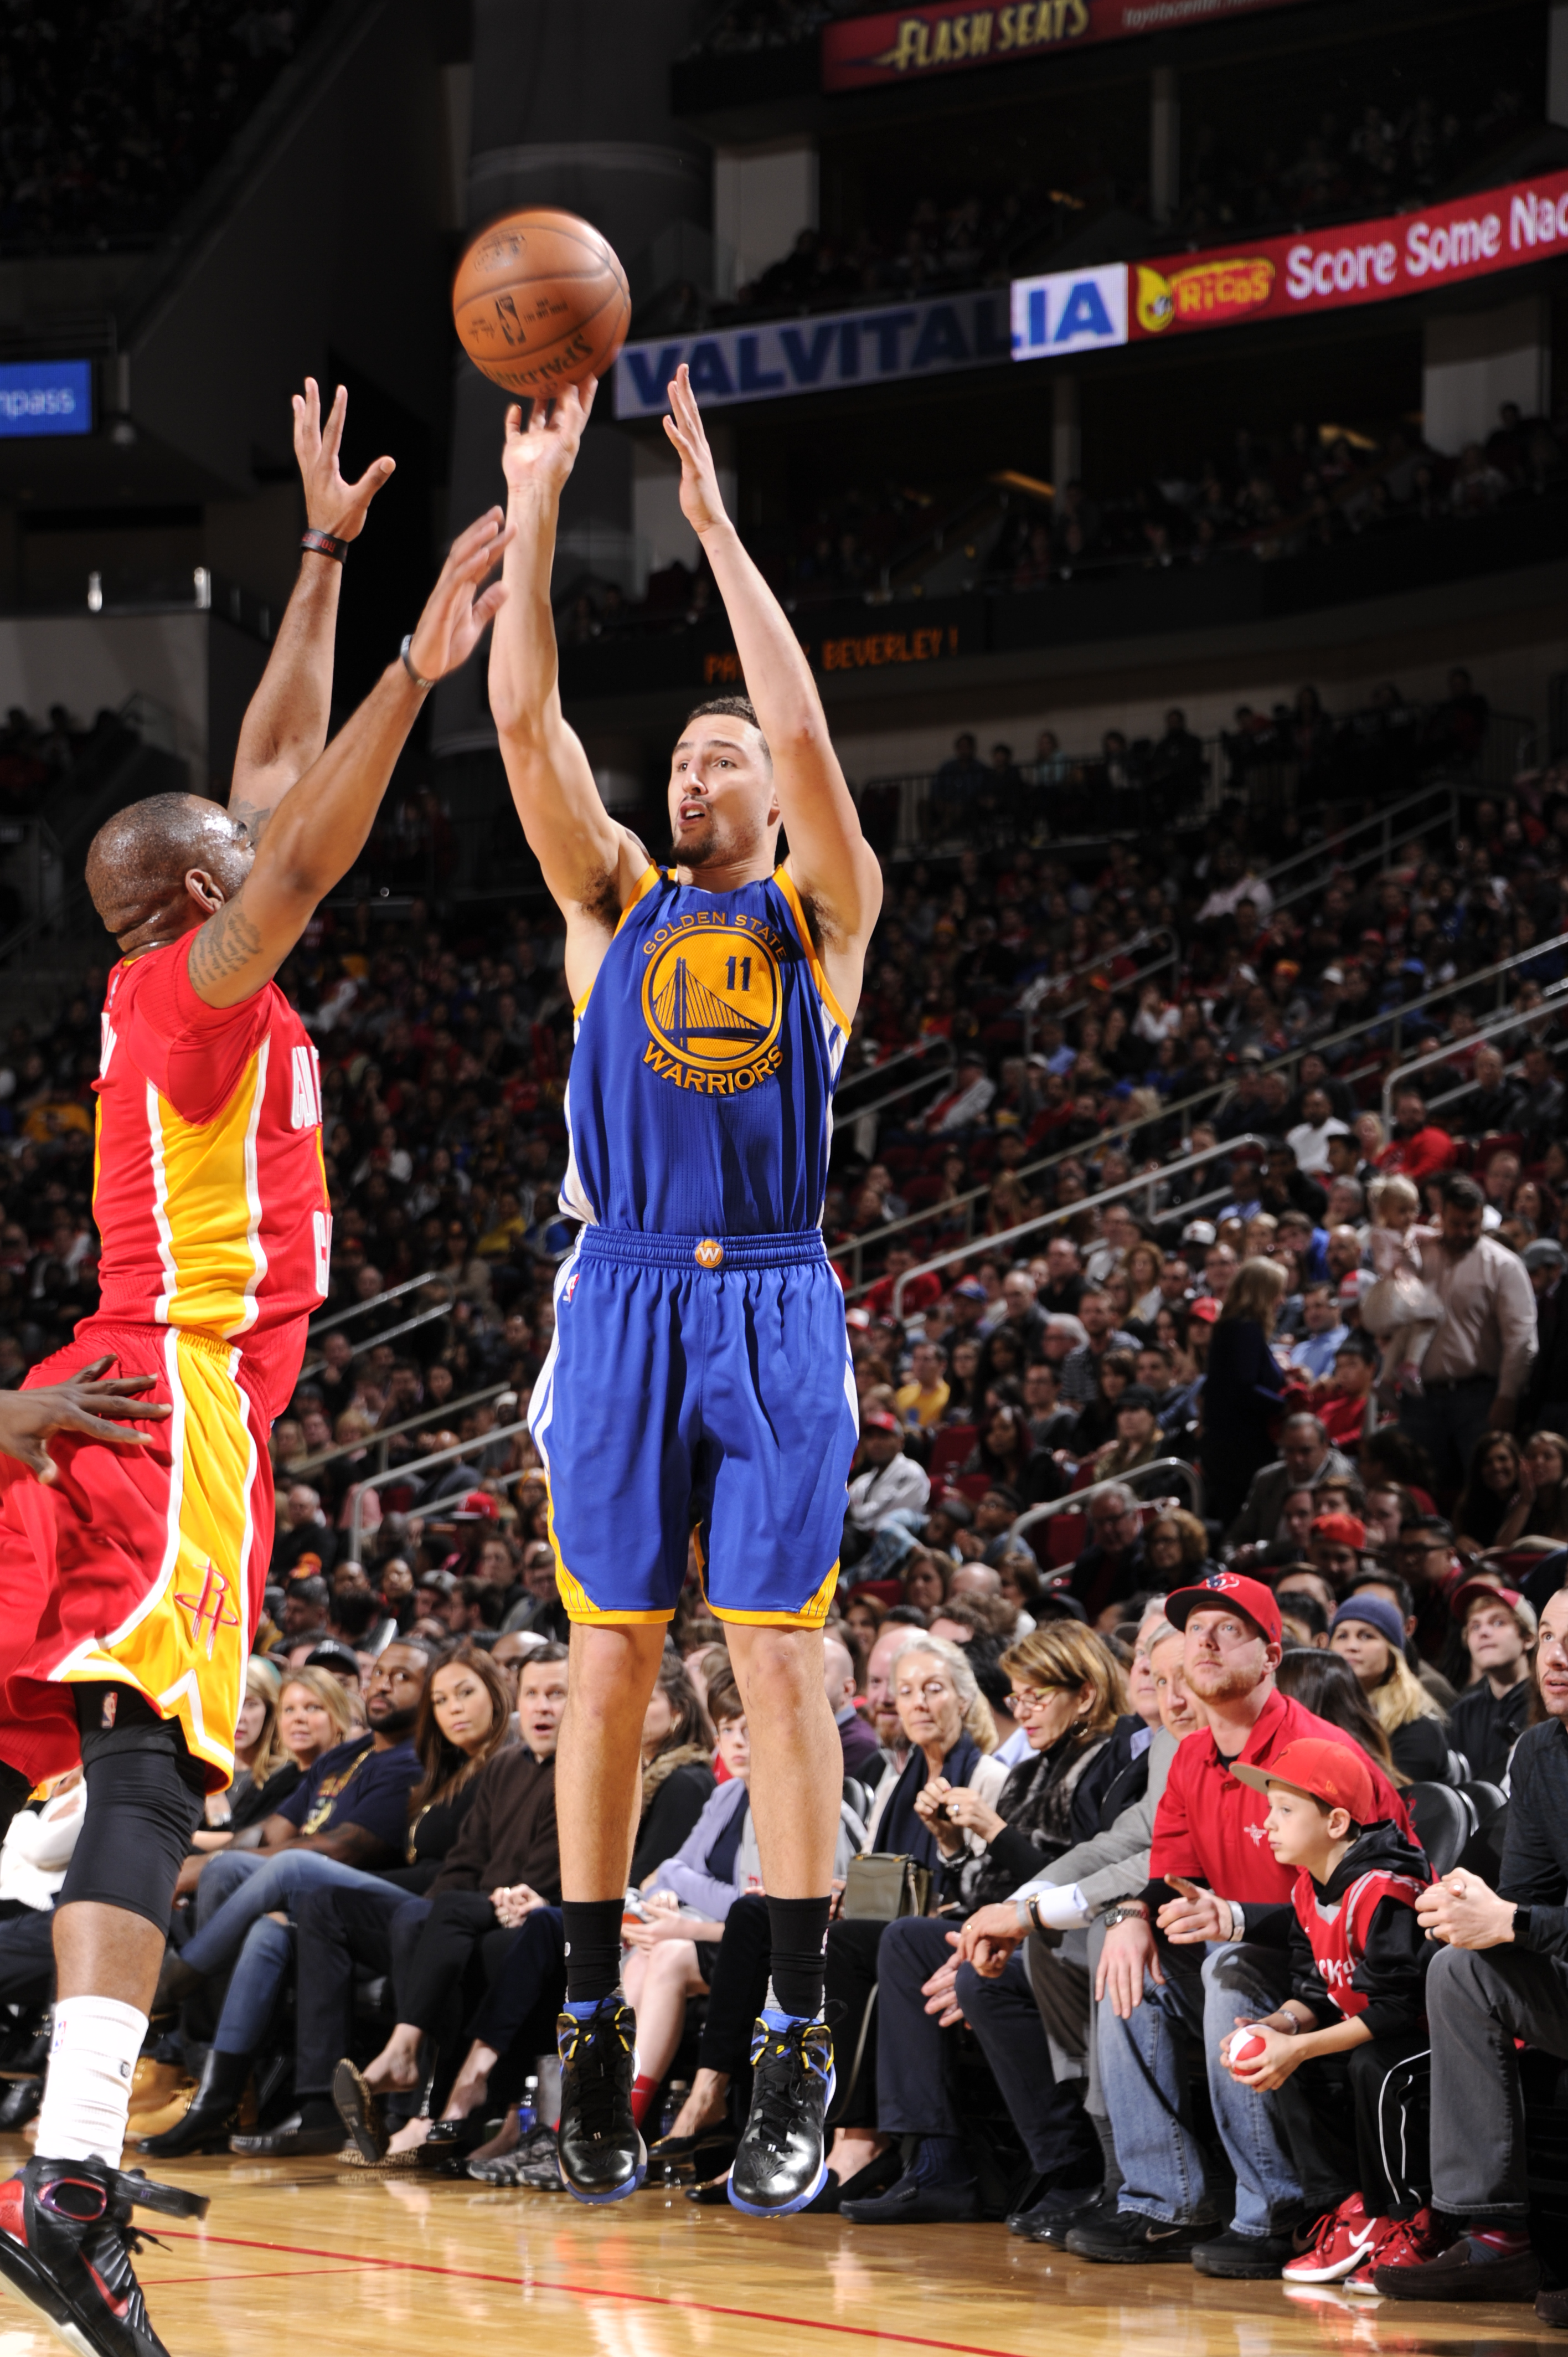 HOUSTON, TX - DECEMBER 31:  Klay Thompson #11 of the Golden State Warriors shoots against the Houston Rockets on December 31, 2015 at the Toyota Center in Houston, Texas. (Photo by Bill Baptist/NBAE via Getty Images)